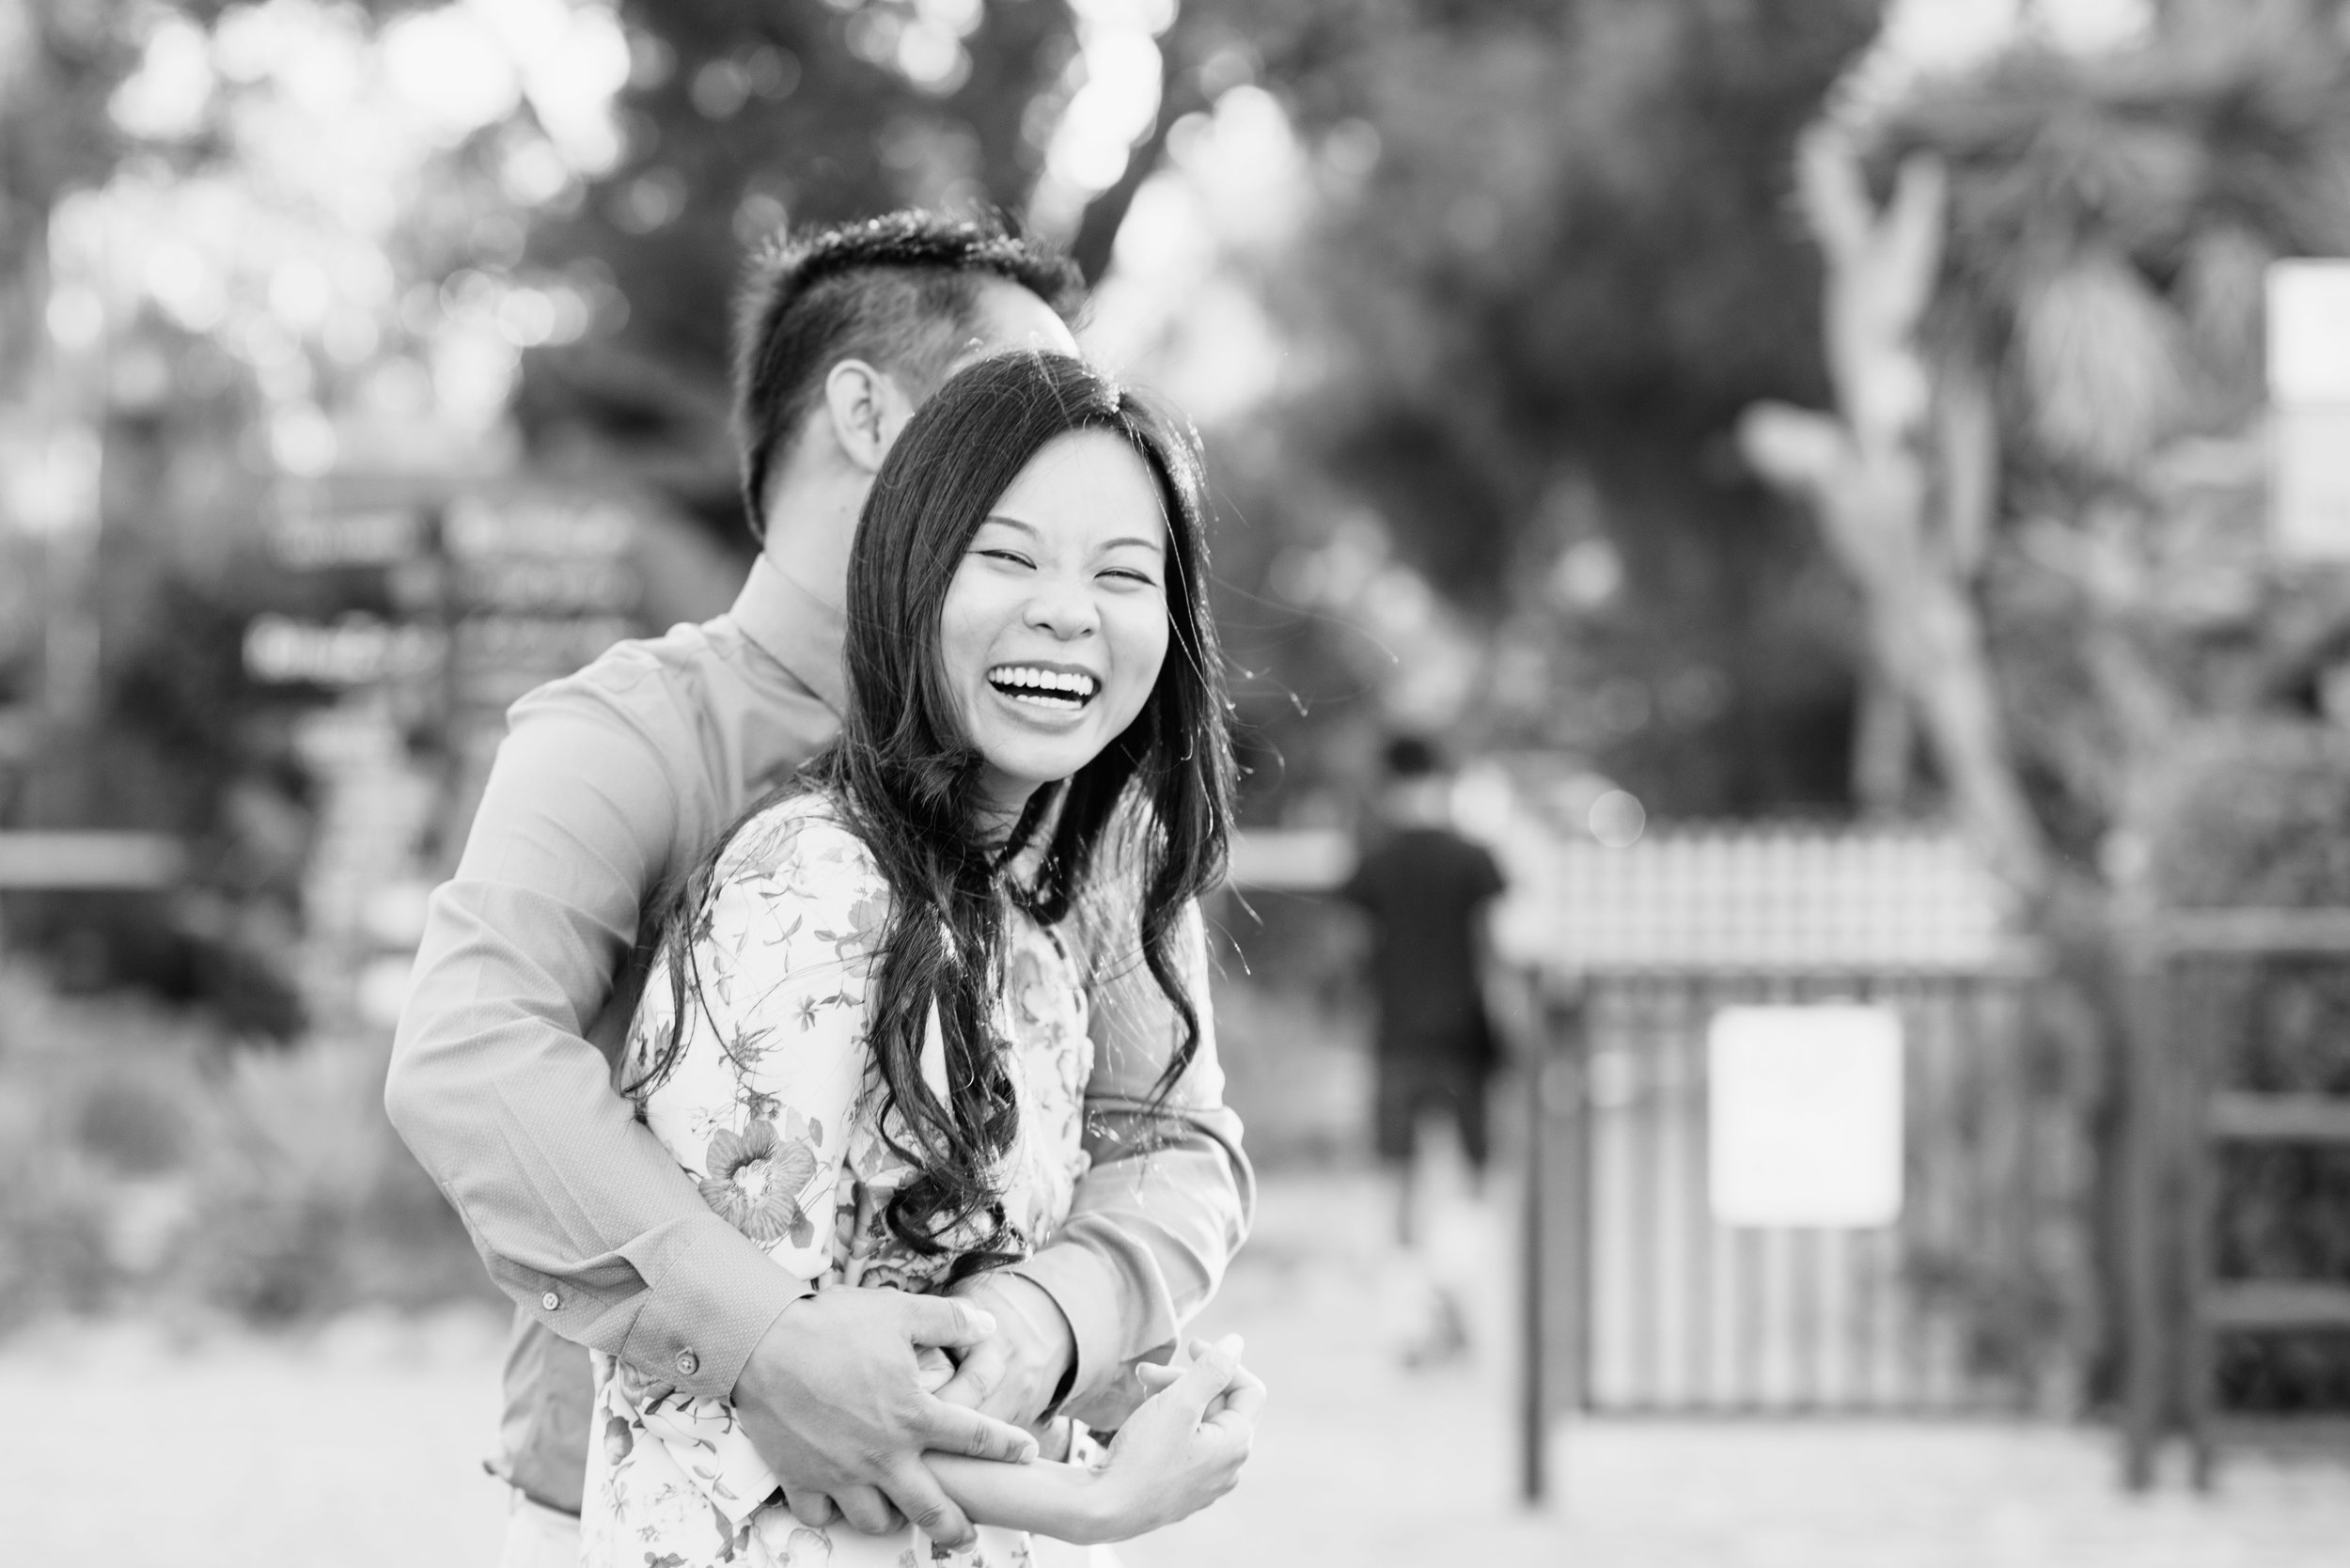 jennifer-jayn-photography-san-juan-capistrano-engagement-session-10.jpg